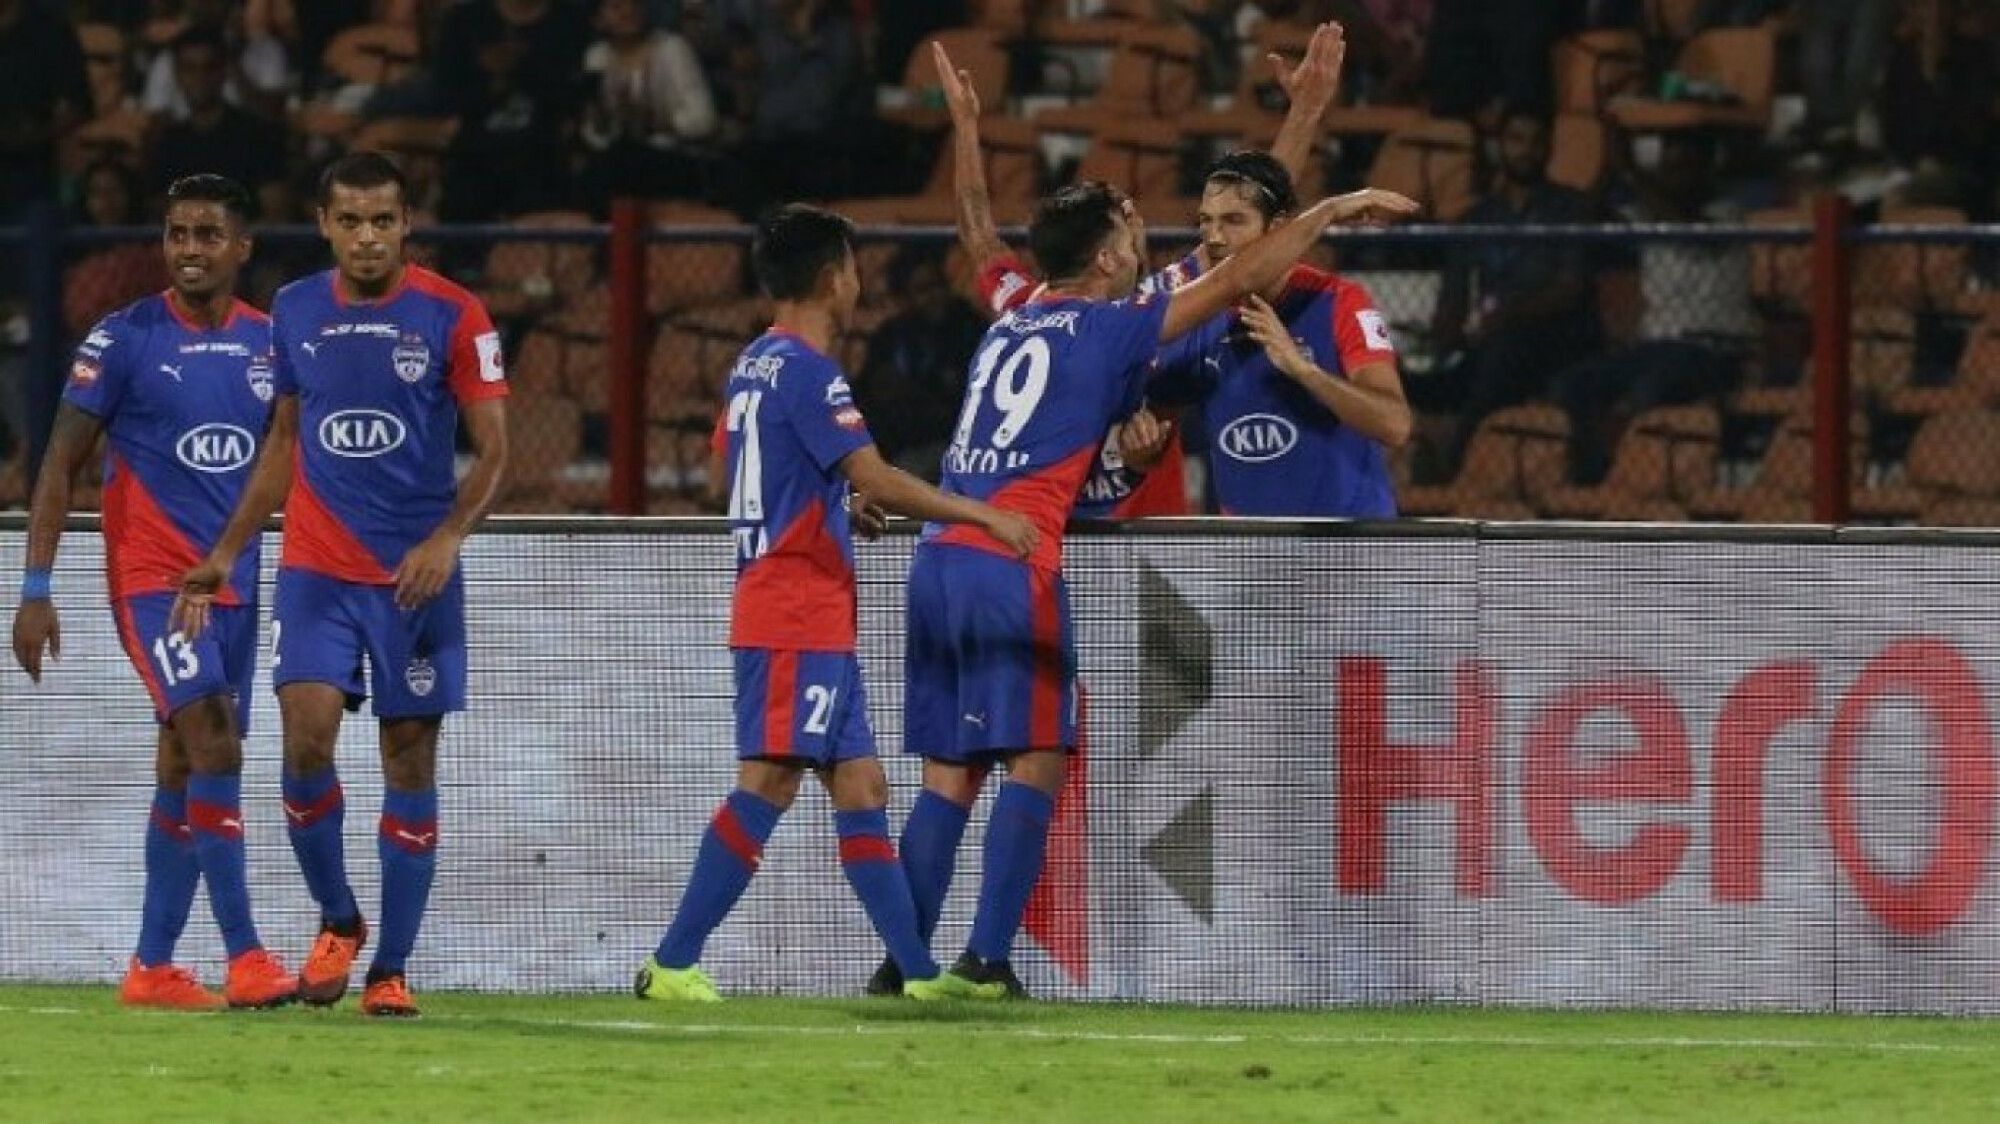 ISL 2018-19: Bengaluru defeat Goa to seal top spot.